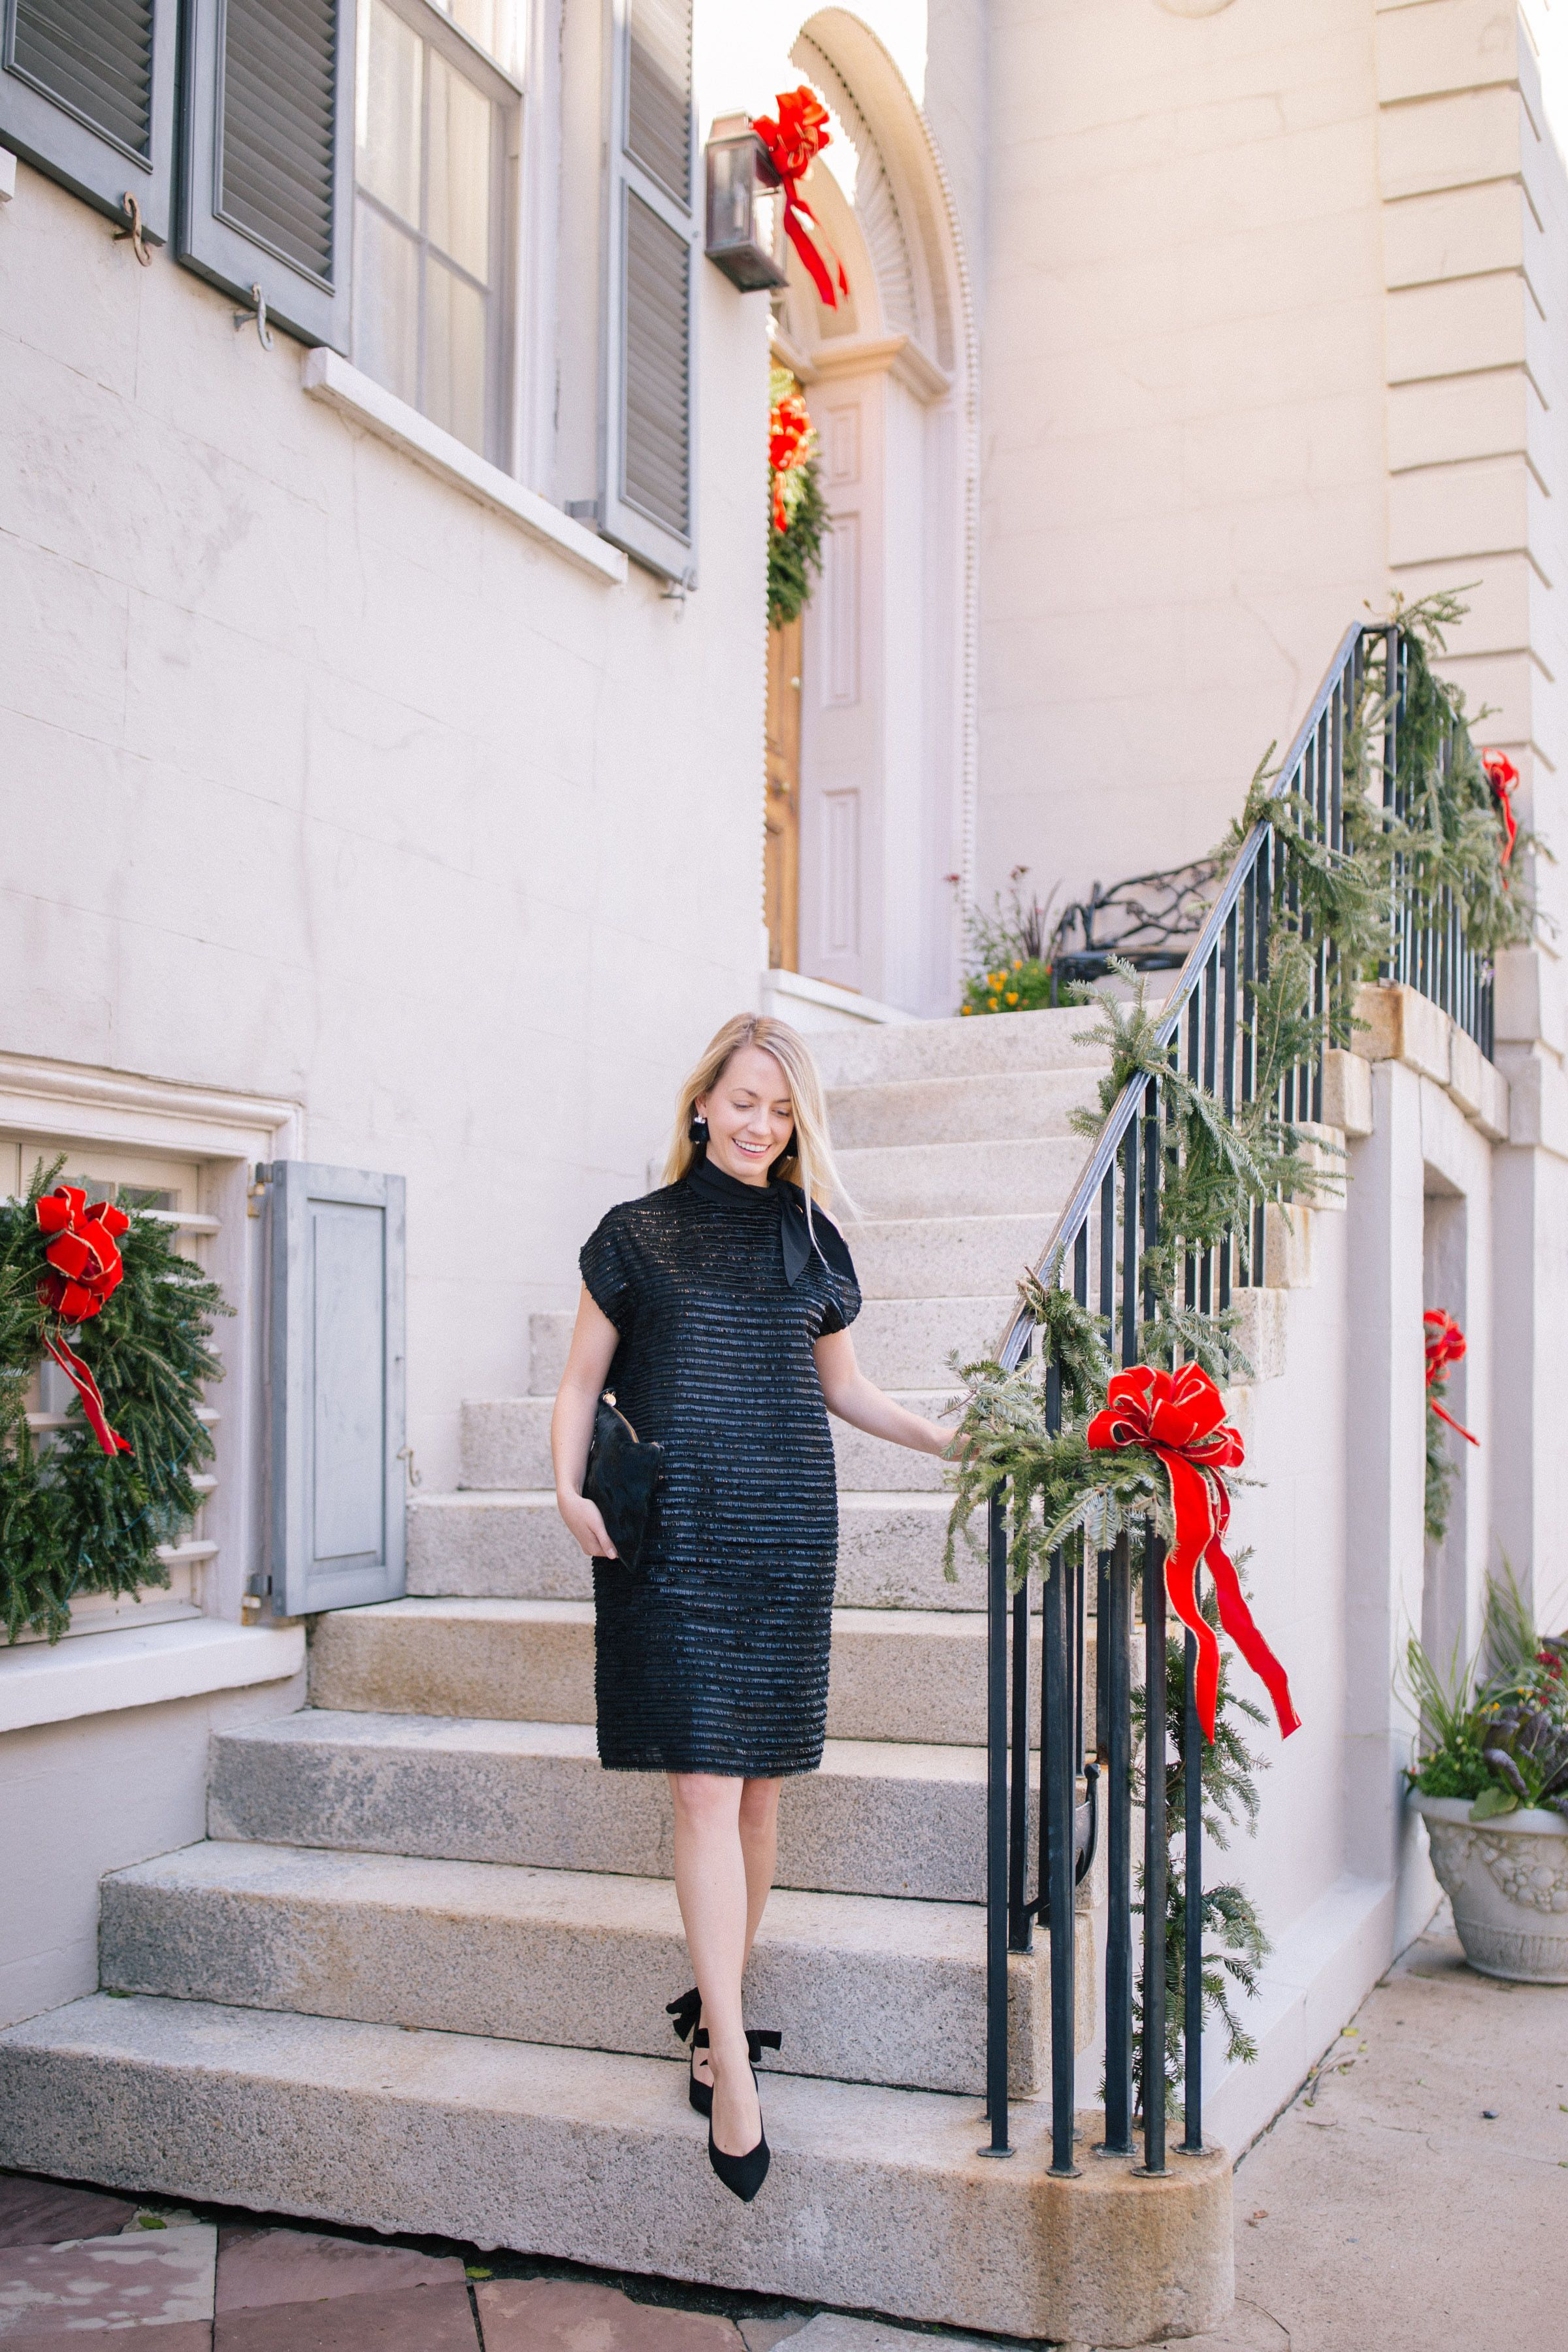 113b3e2b5f70 Little black holiday cocktail dresses + what to wear to a fancy holiday  party | Rhyme & Reason